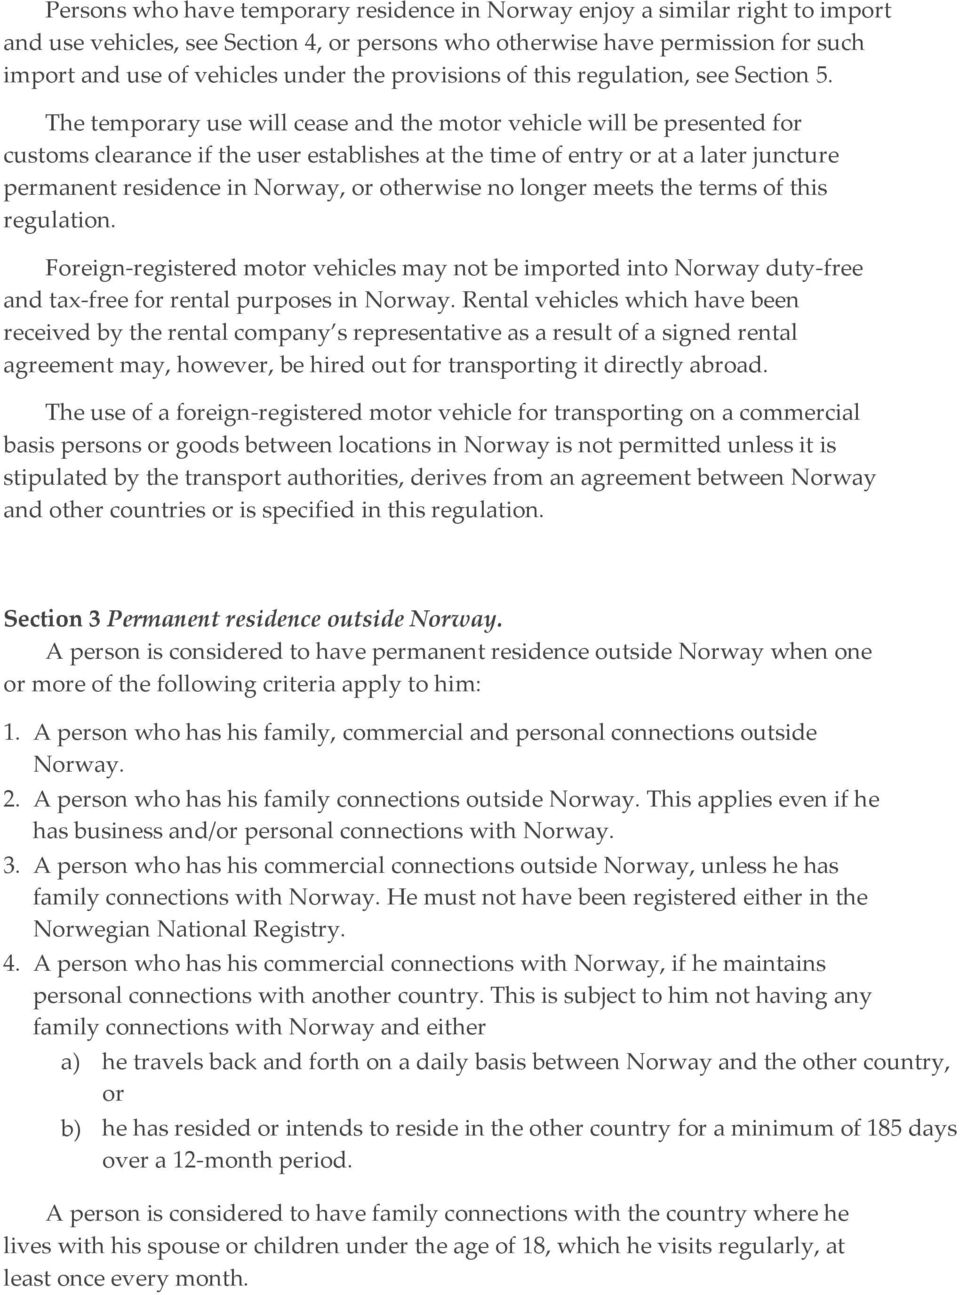 Regulation relating to duty-free and tax-free import and